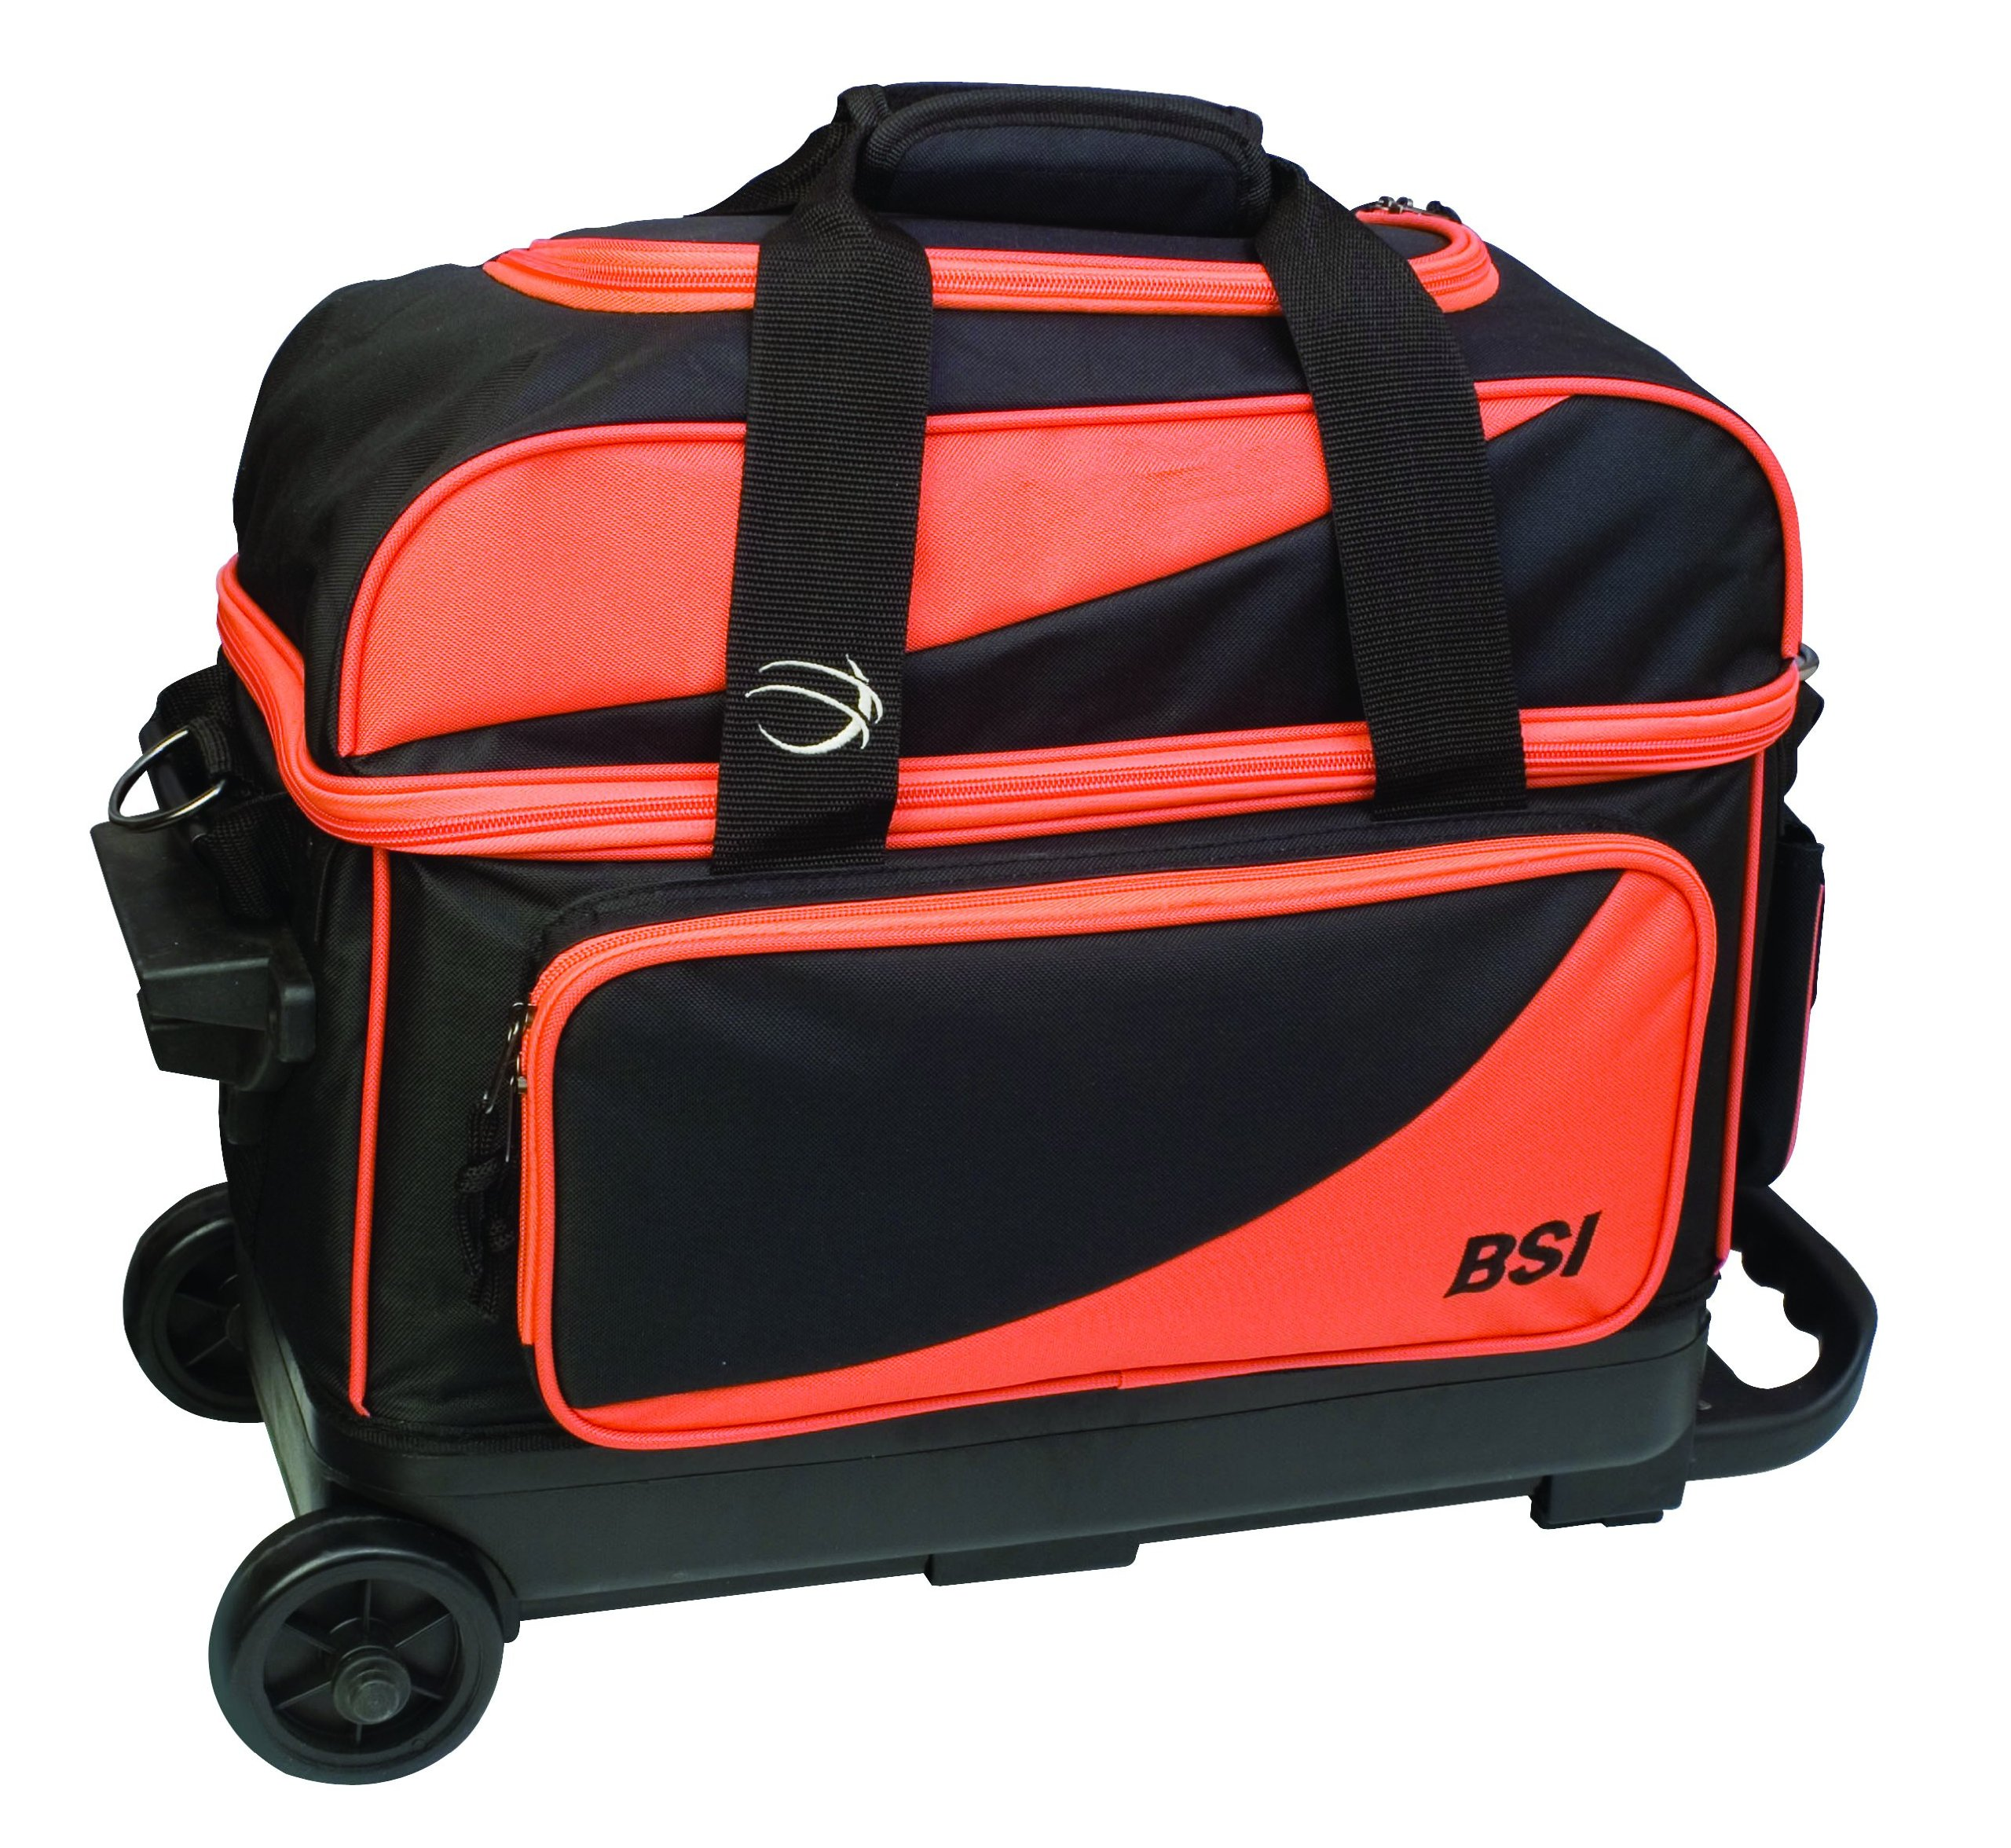 BSI Double Roller Bowling Bag